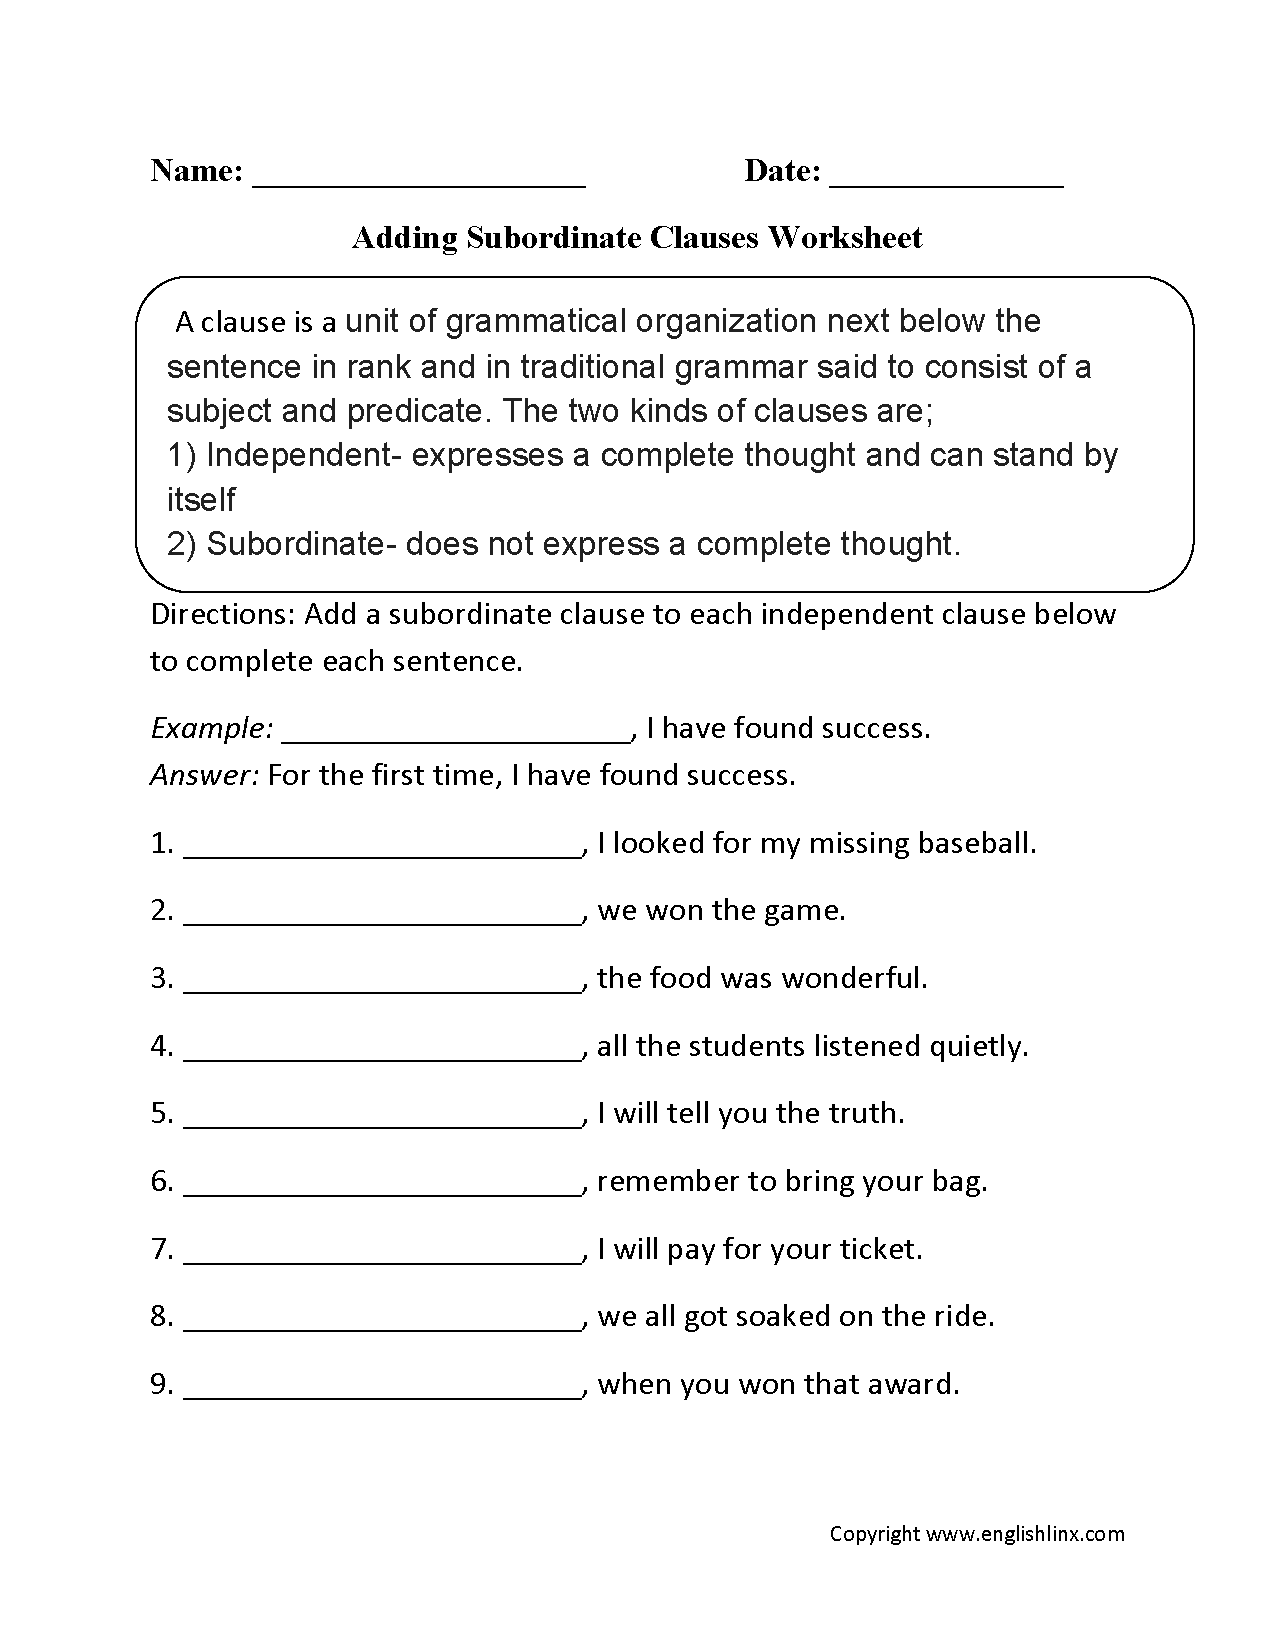 Adding Subordinate Clauses Worksheet